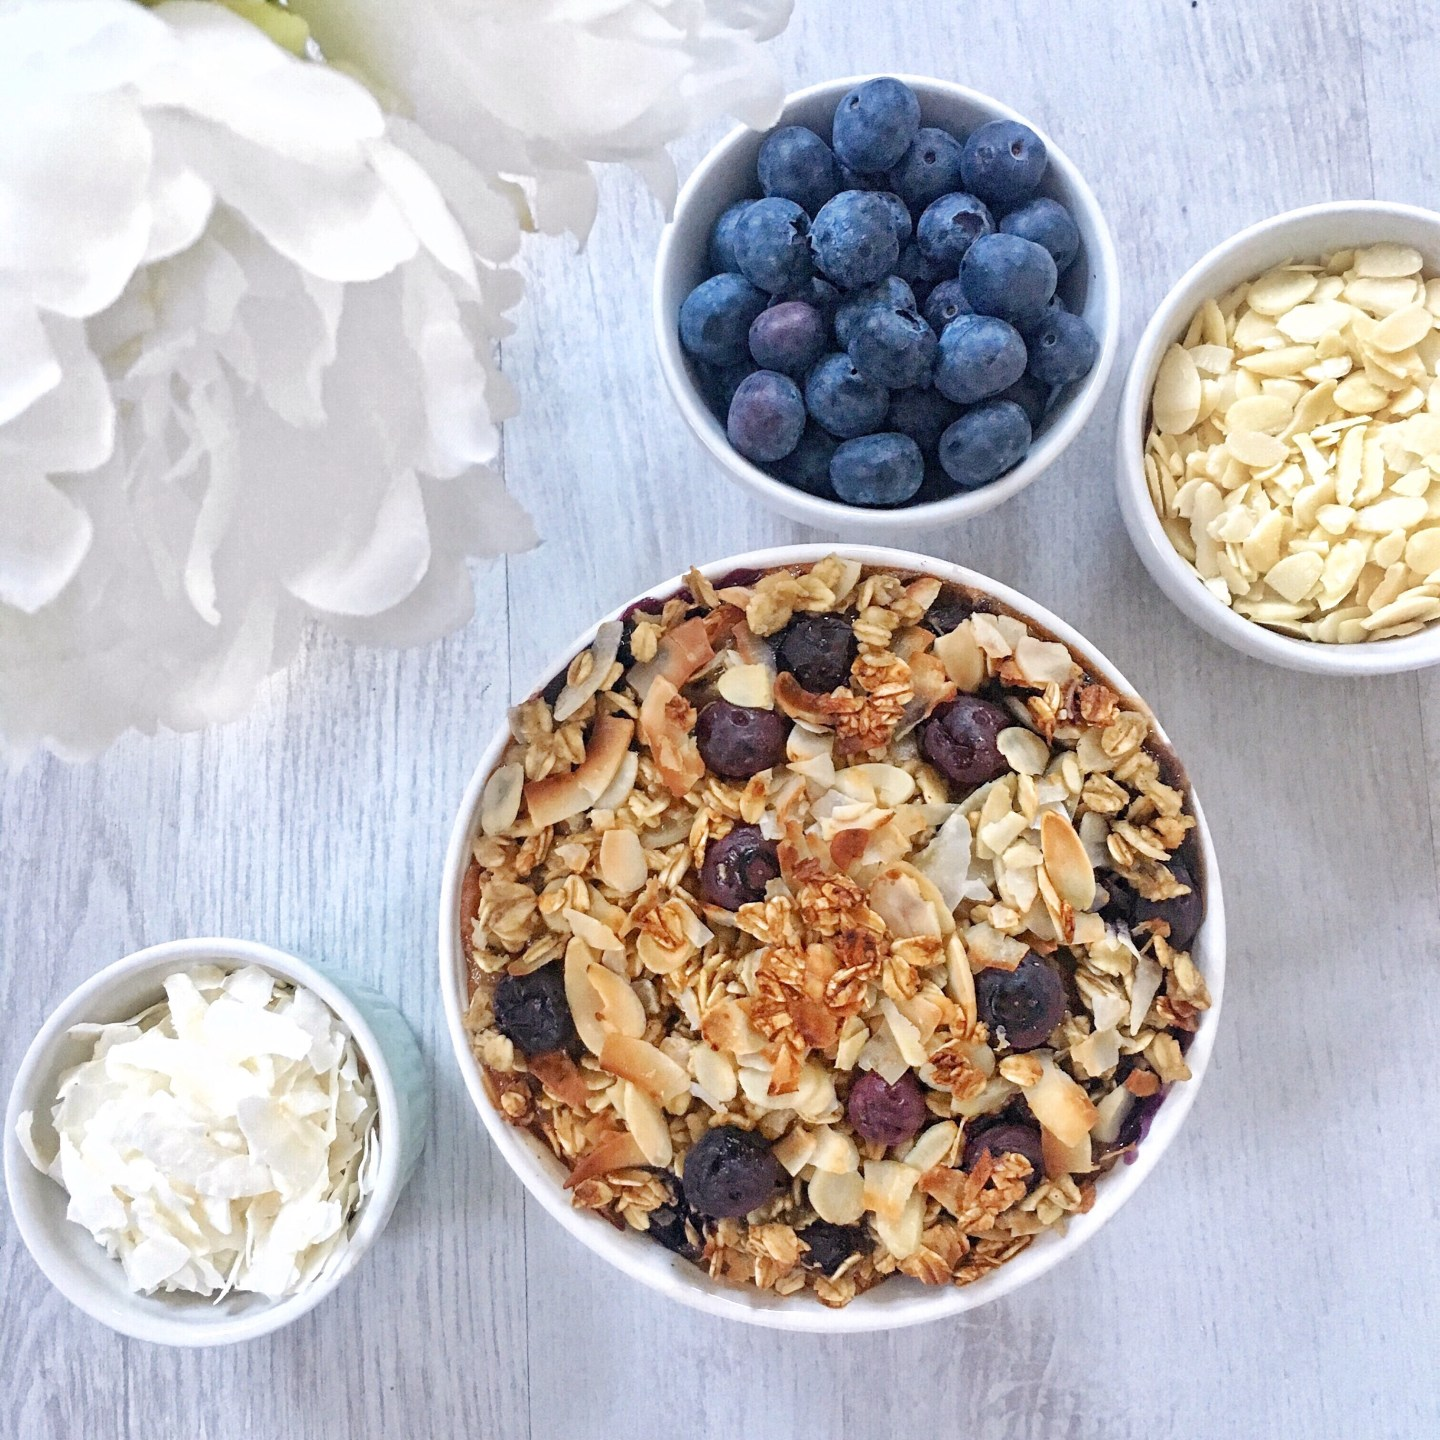 Healthy Blueberry Baked Oats Recipe